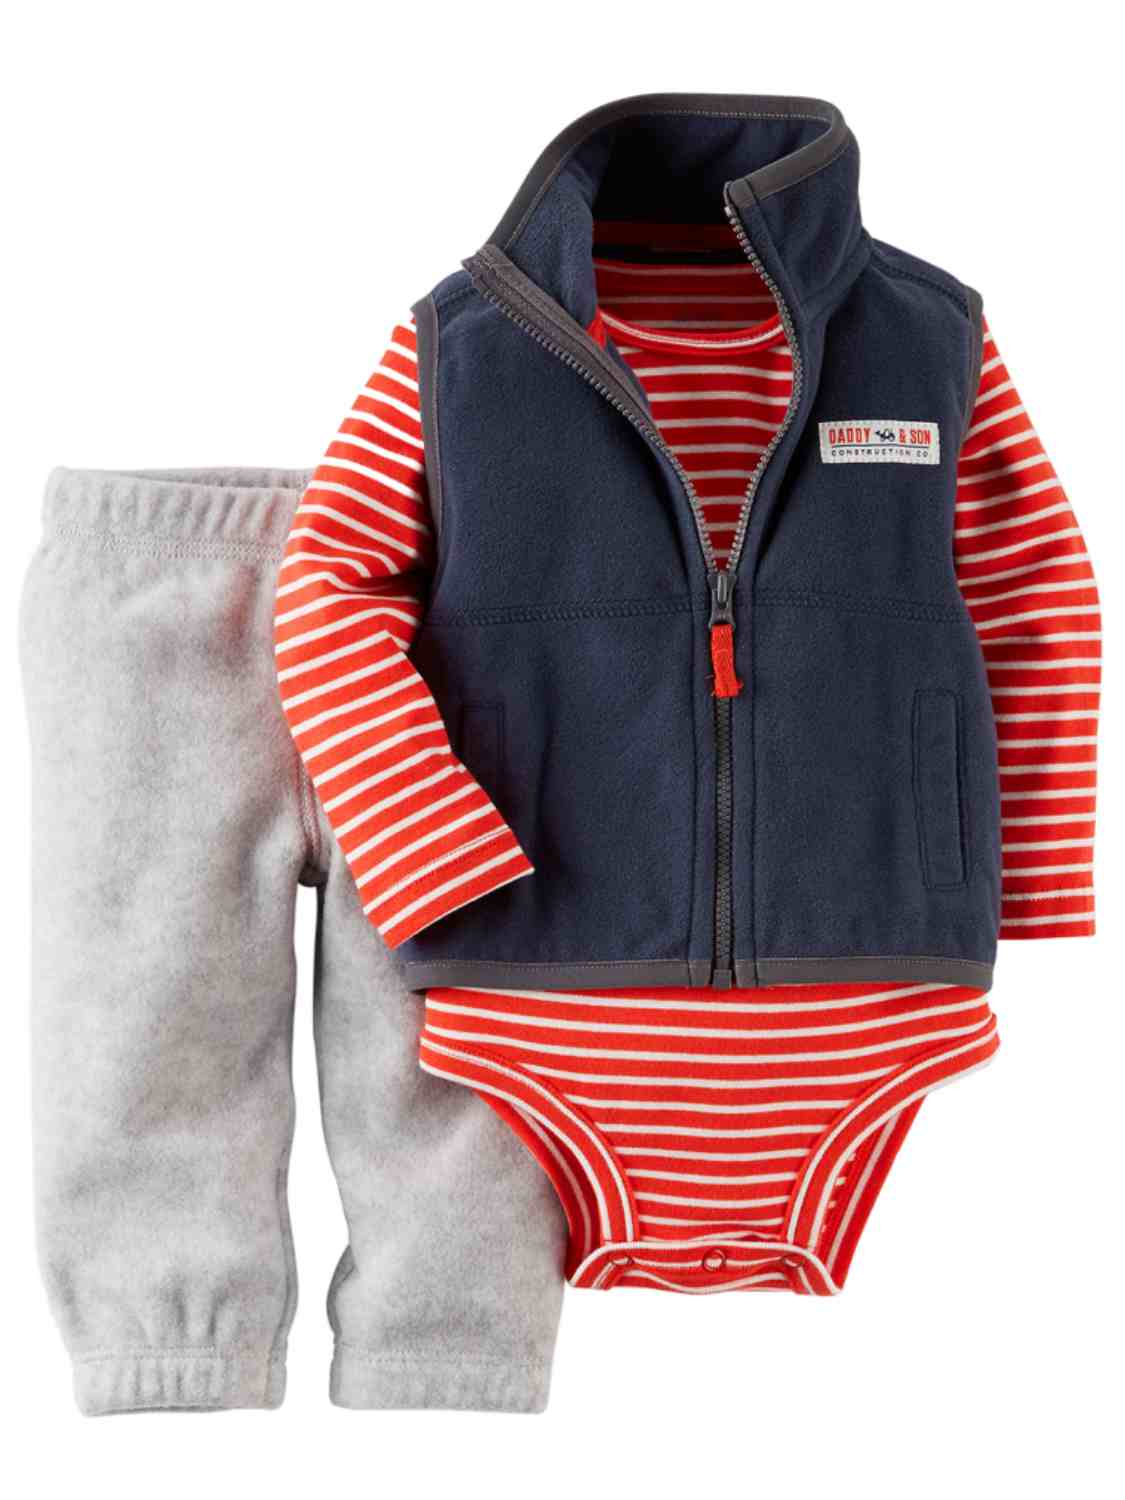 Carter's Carters Infant Boys 3 PC Daddy & Son Construction Pants Creeper & Vest 6 Months